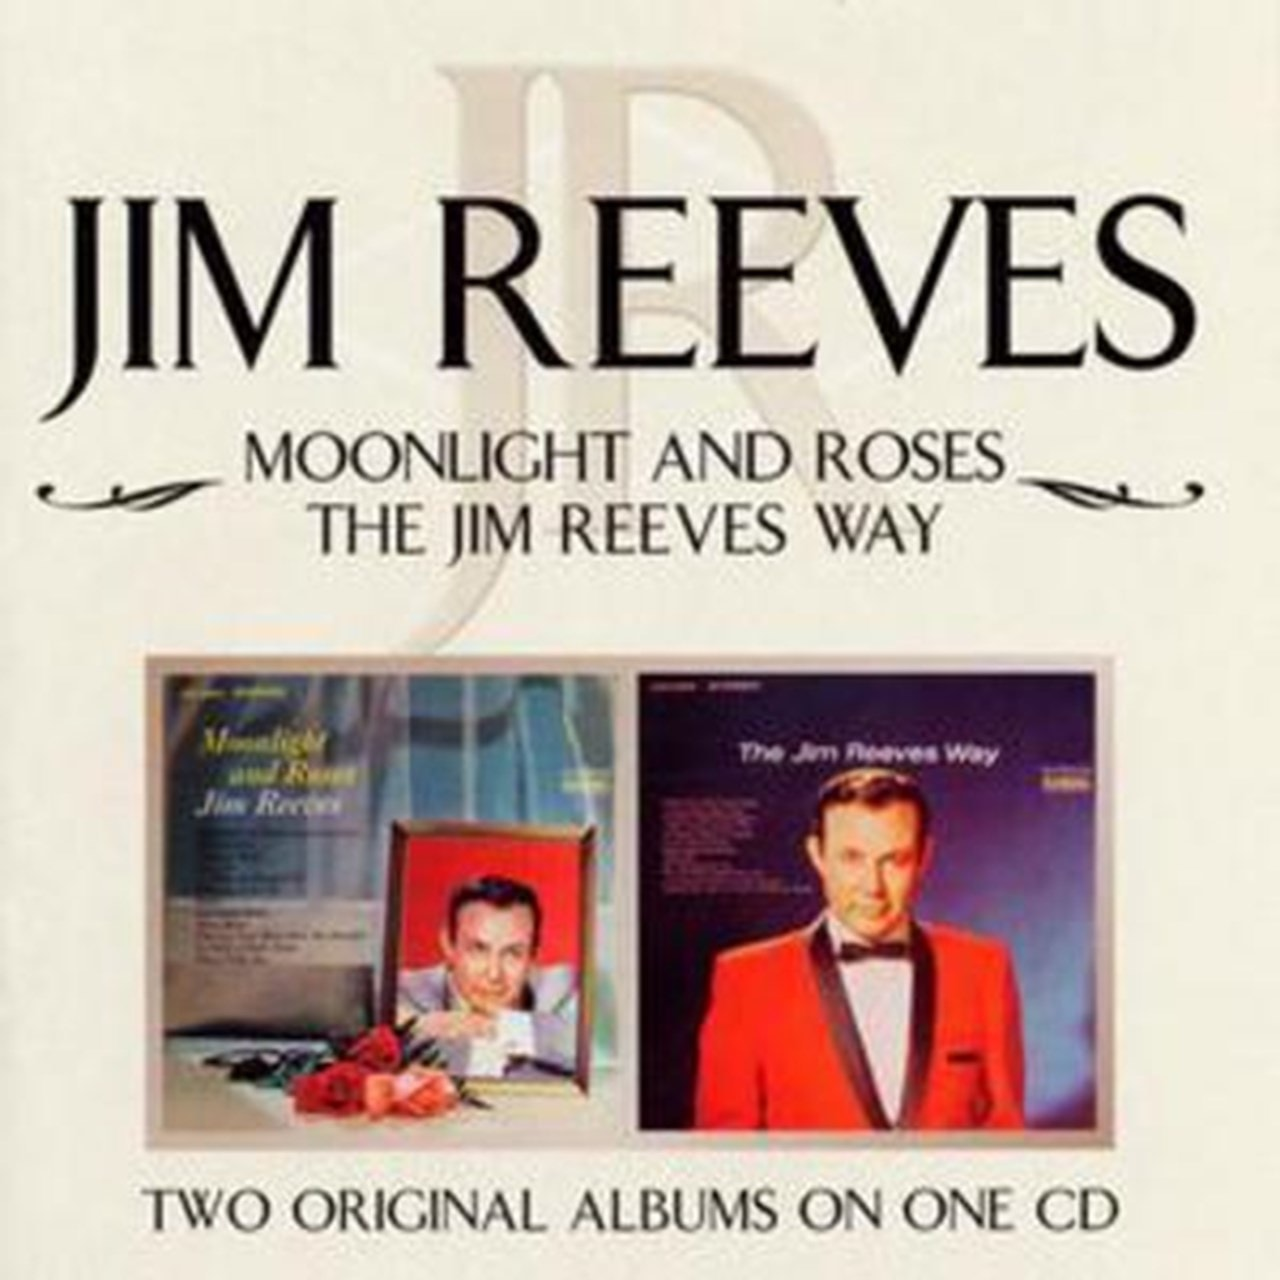 Moonlight and Roses/the Jim Reeves Way - 1